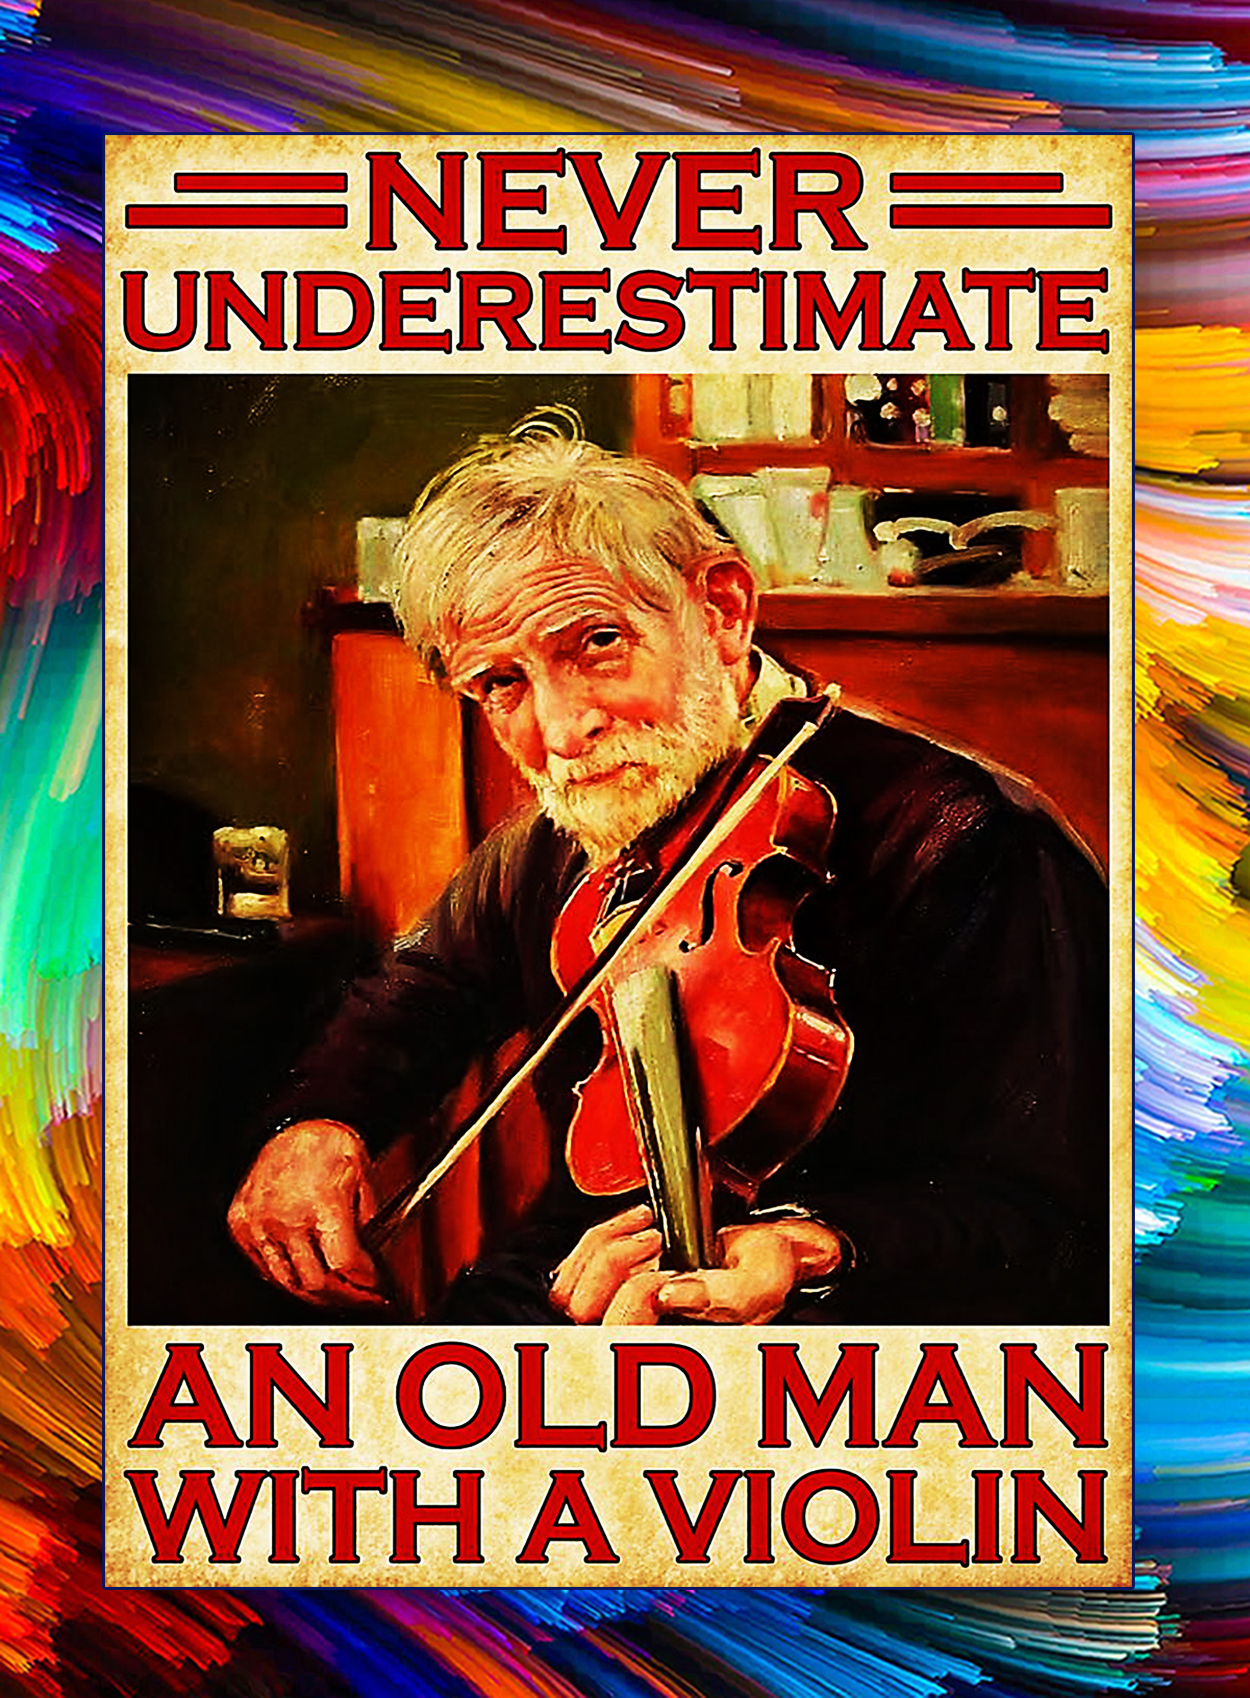 Never underestimate an old man with a violin poster - A2